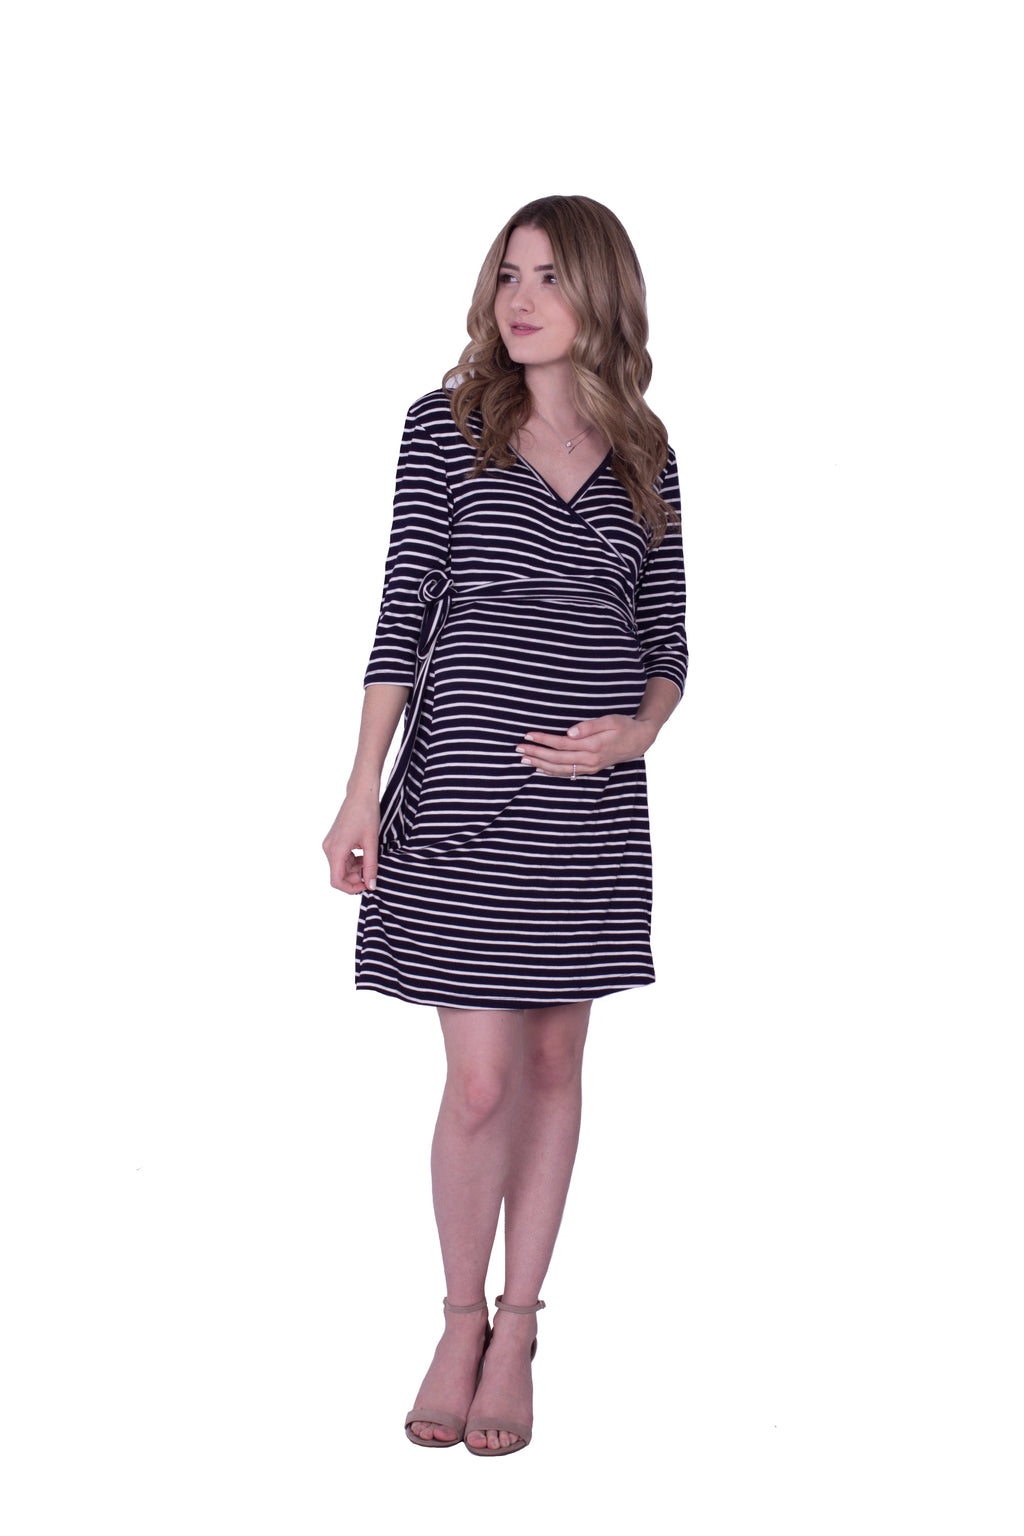 Whimsical Wrap Maternity/Nursing Dress - Nautical Stripe